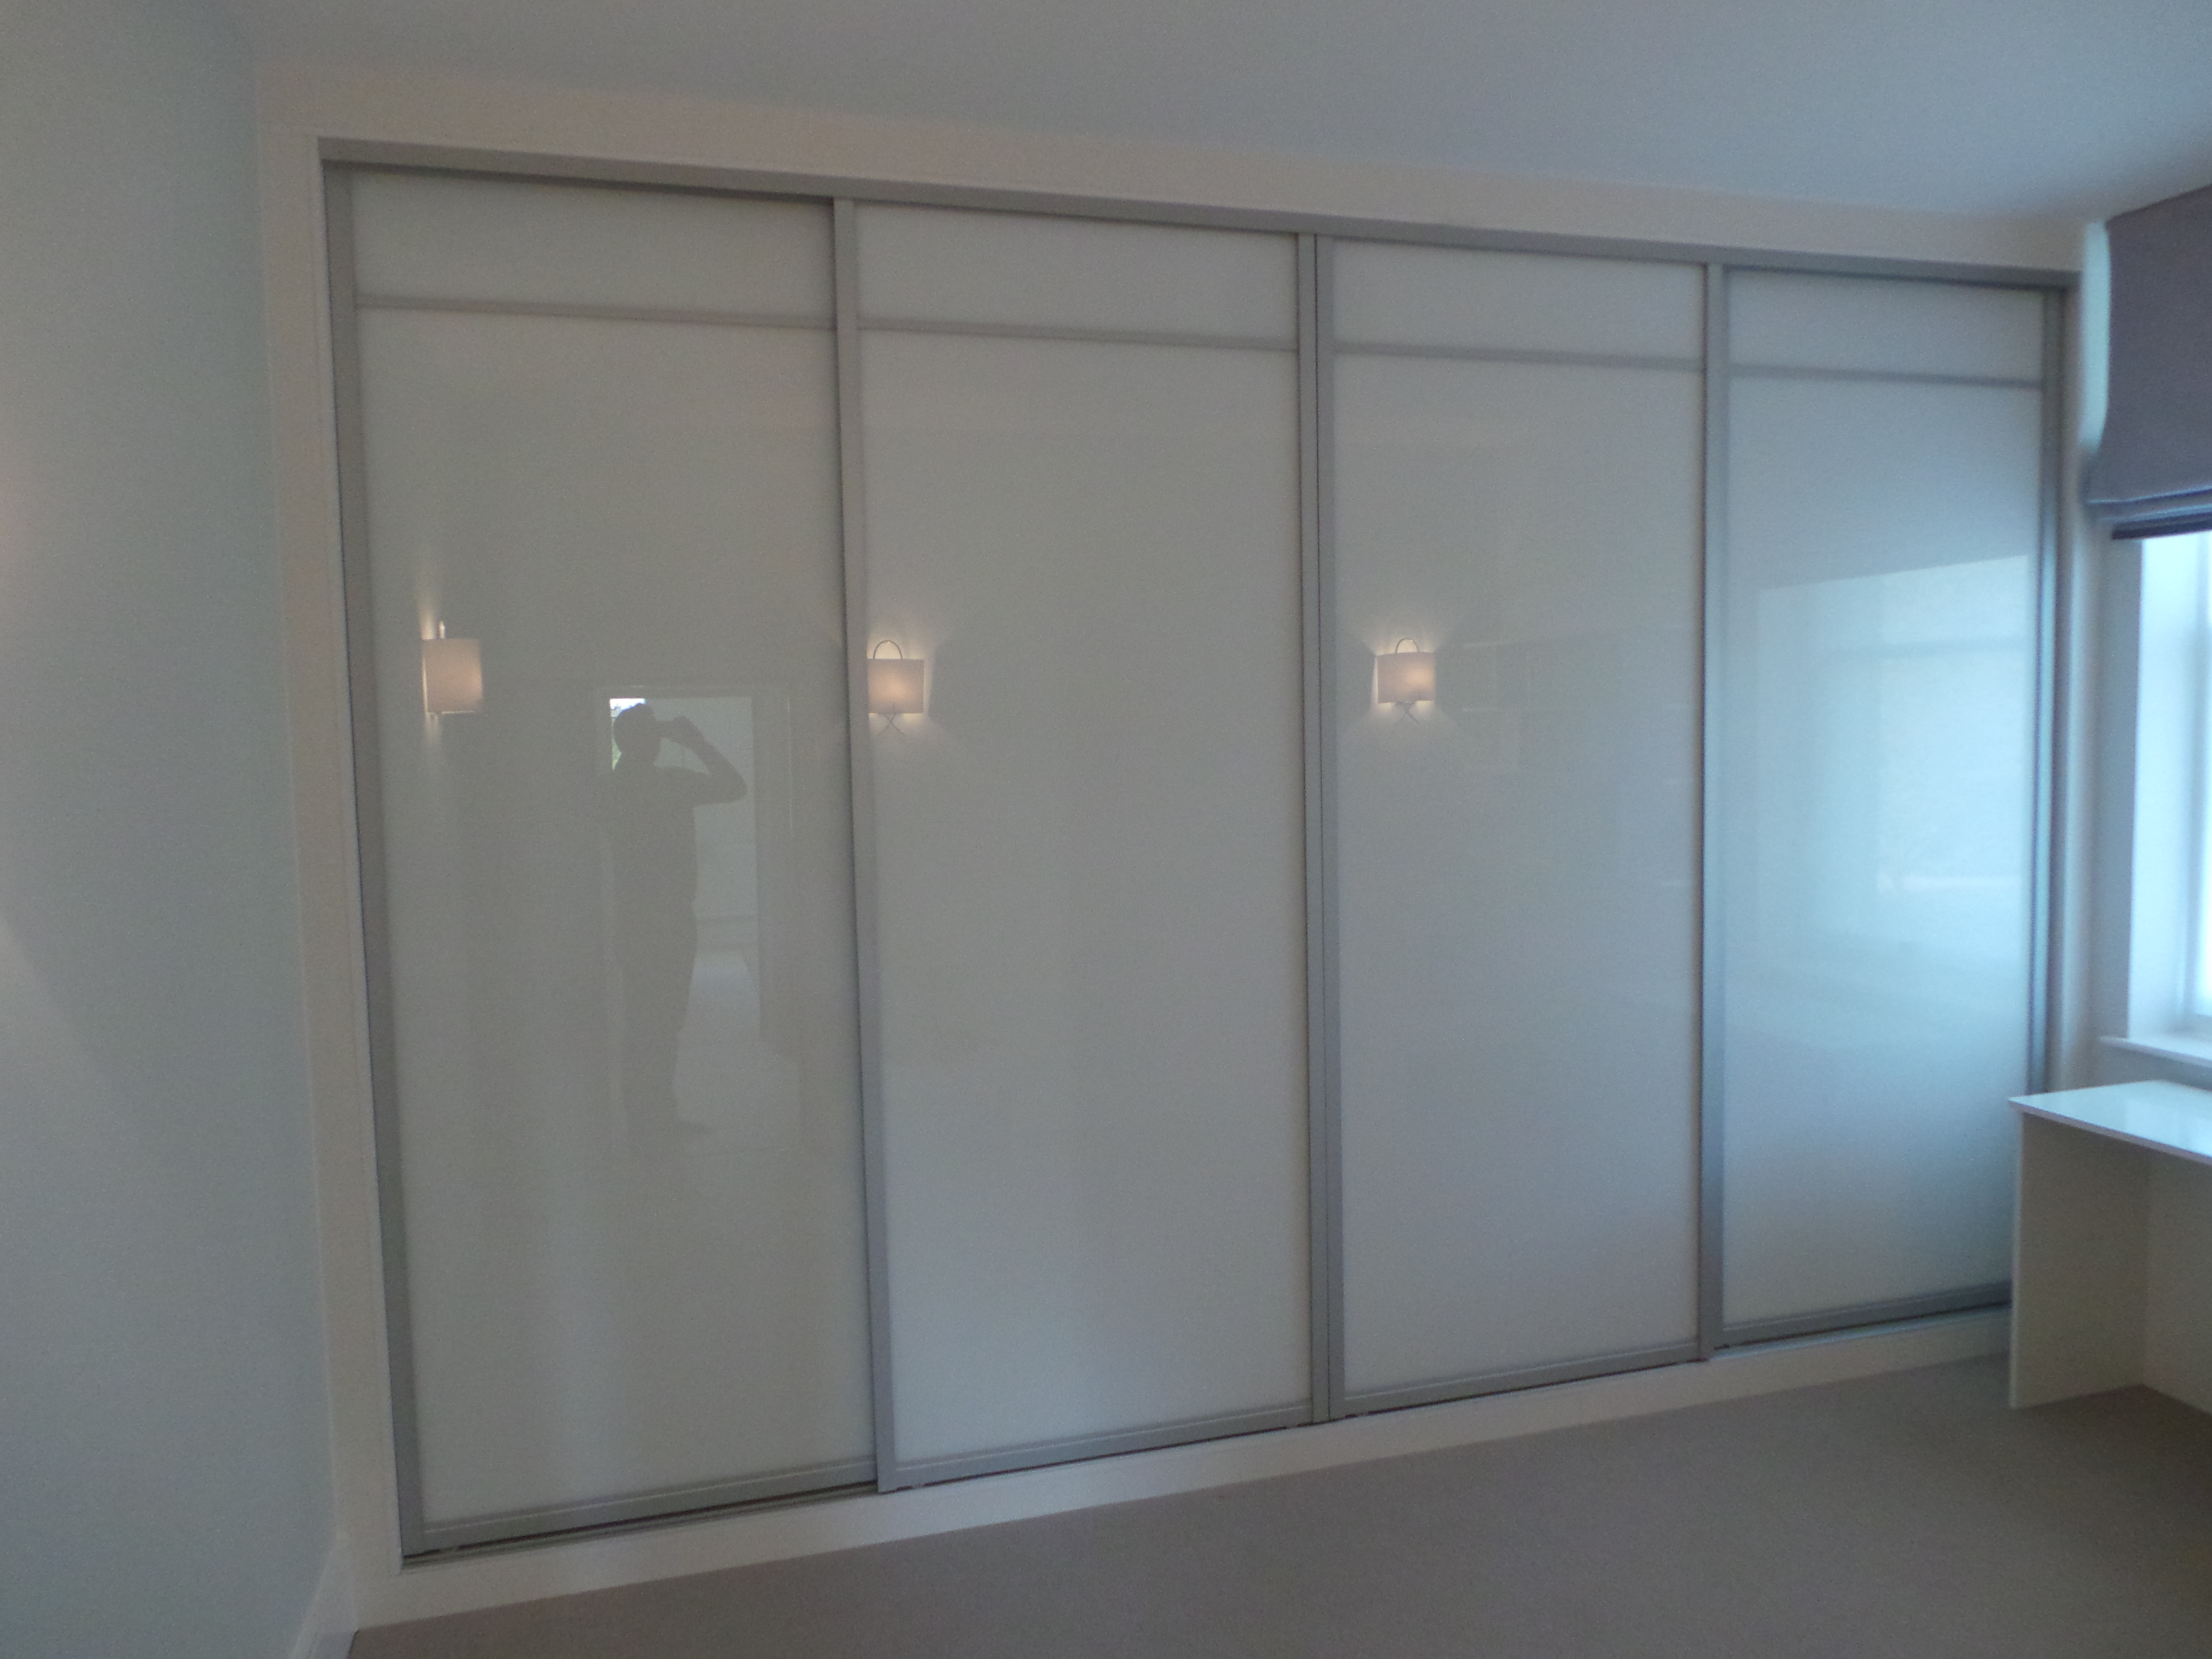 Fitted Sliding Doors Wardrobes The Best Way To Save Space A